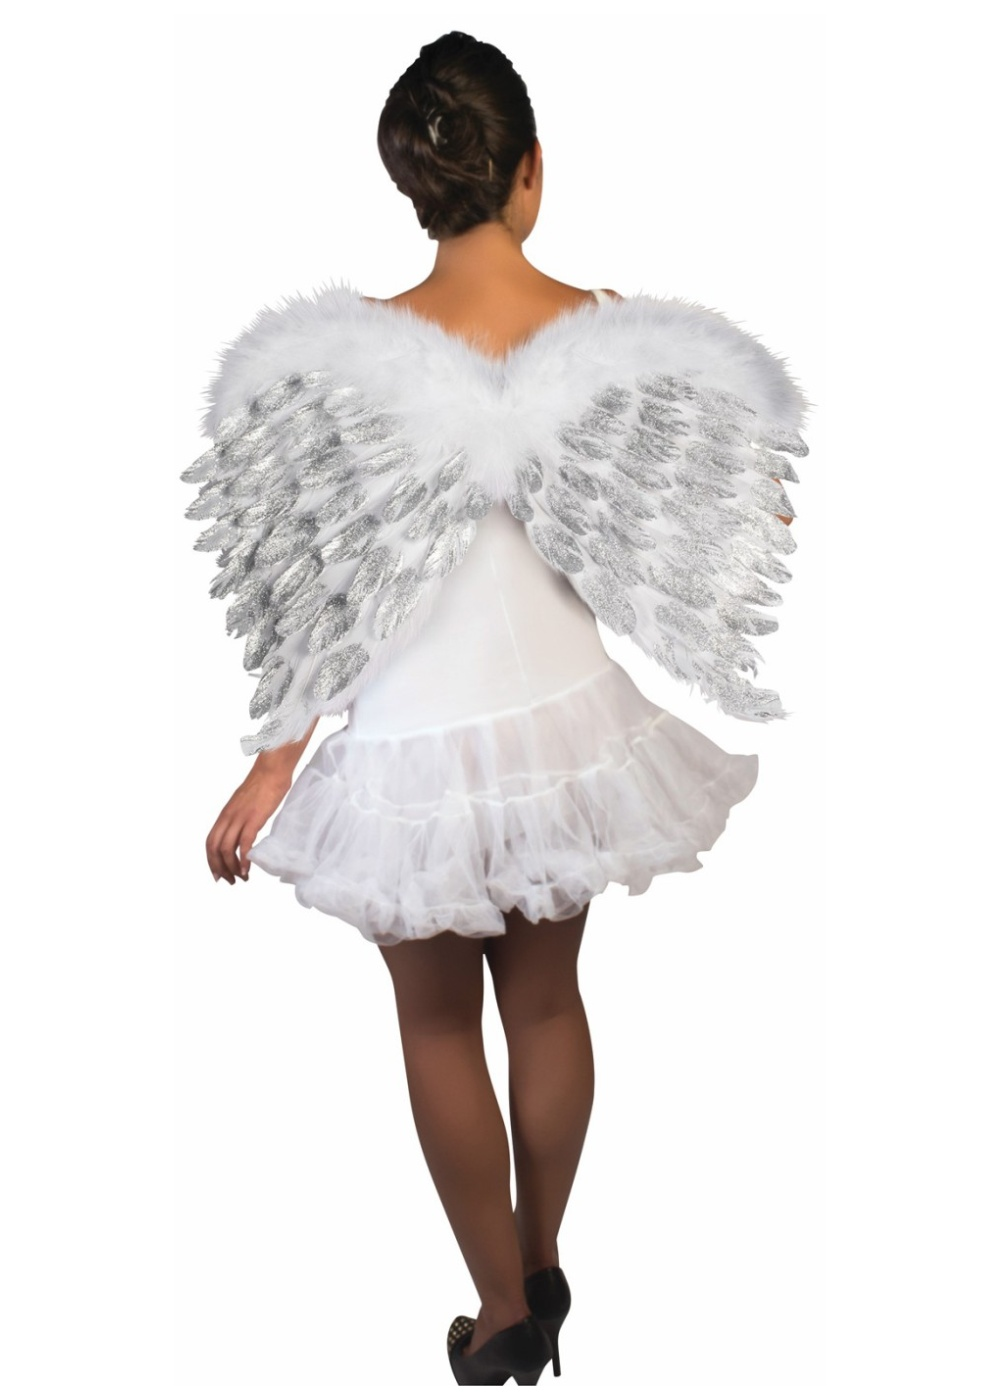 how to make feather wings for a costume